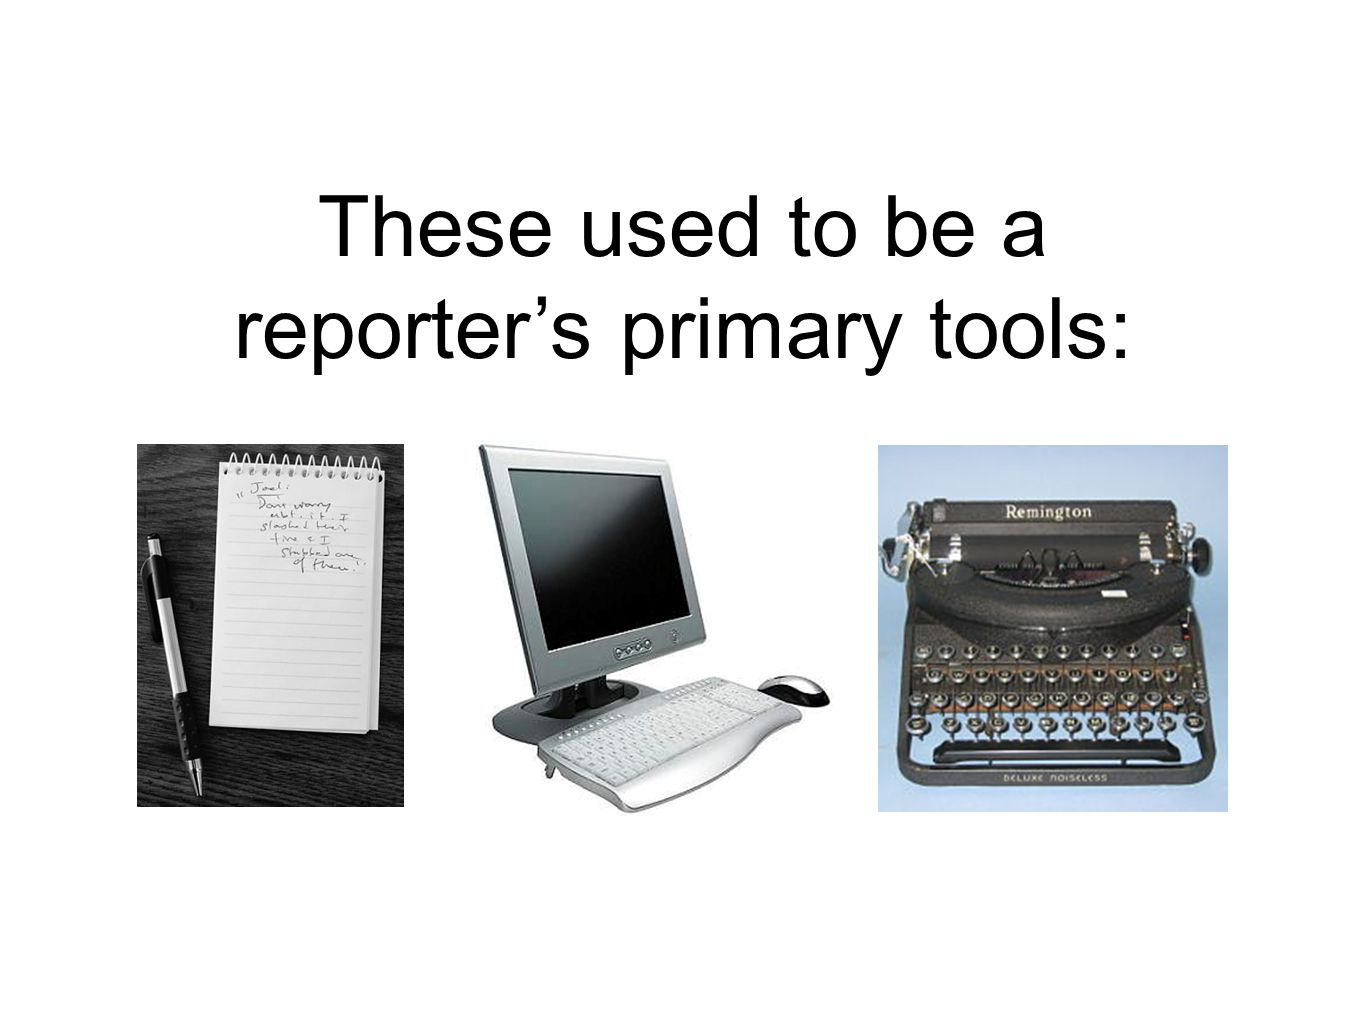 These used to be a reporter's primary tools: